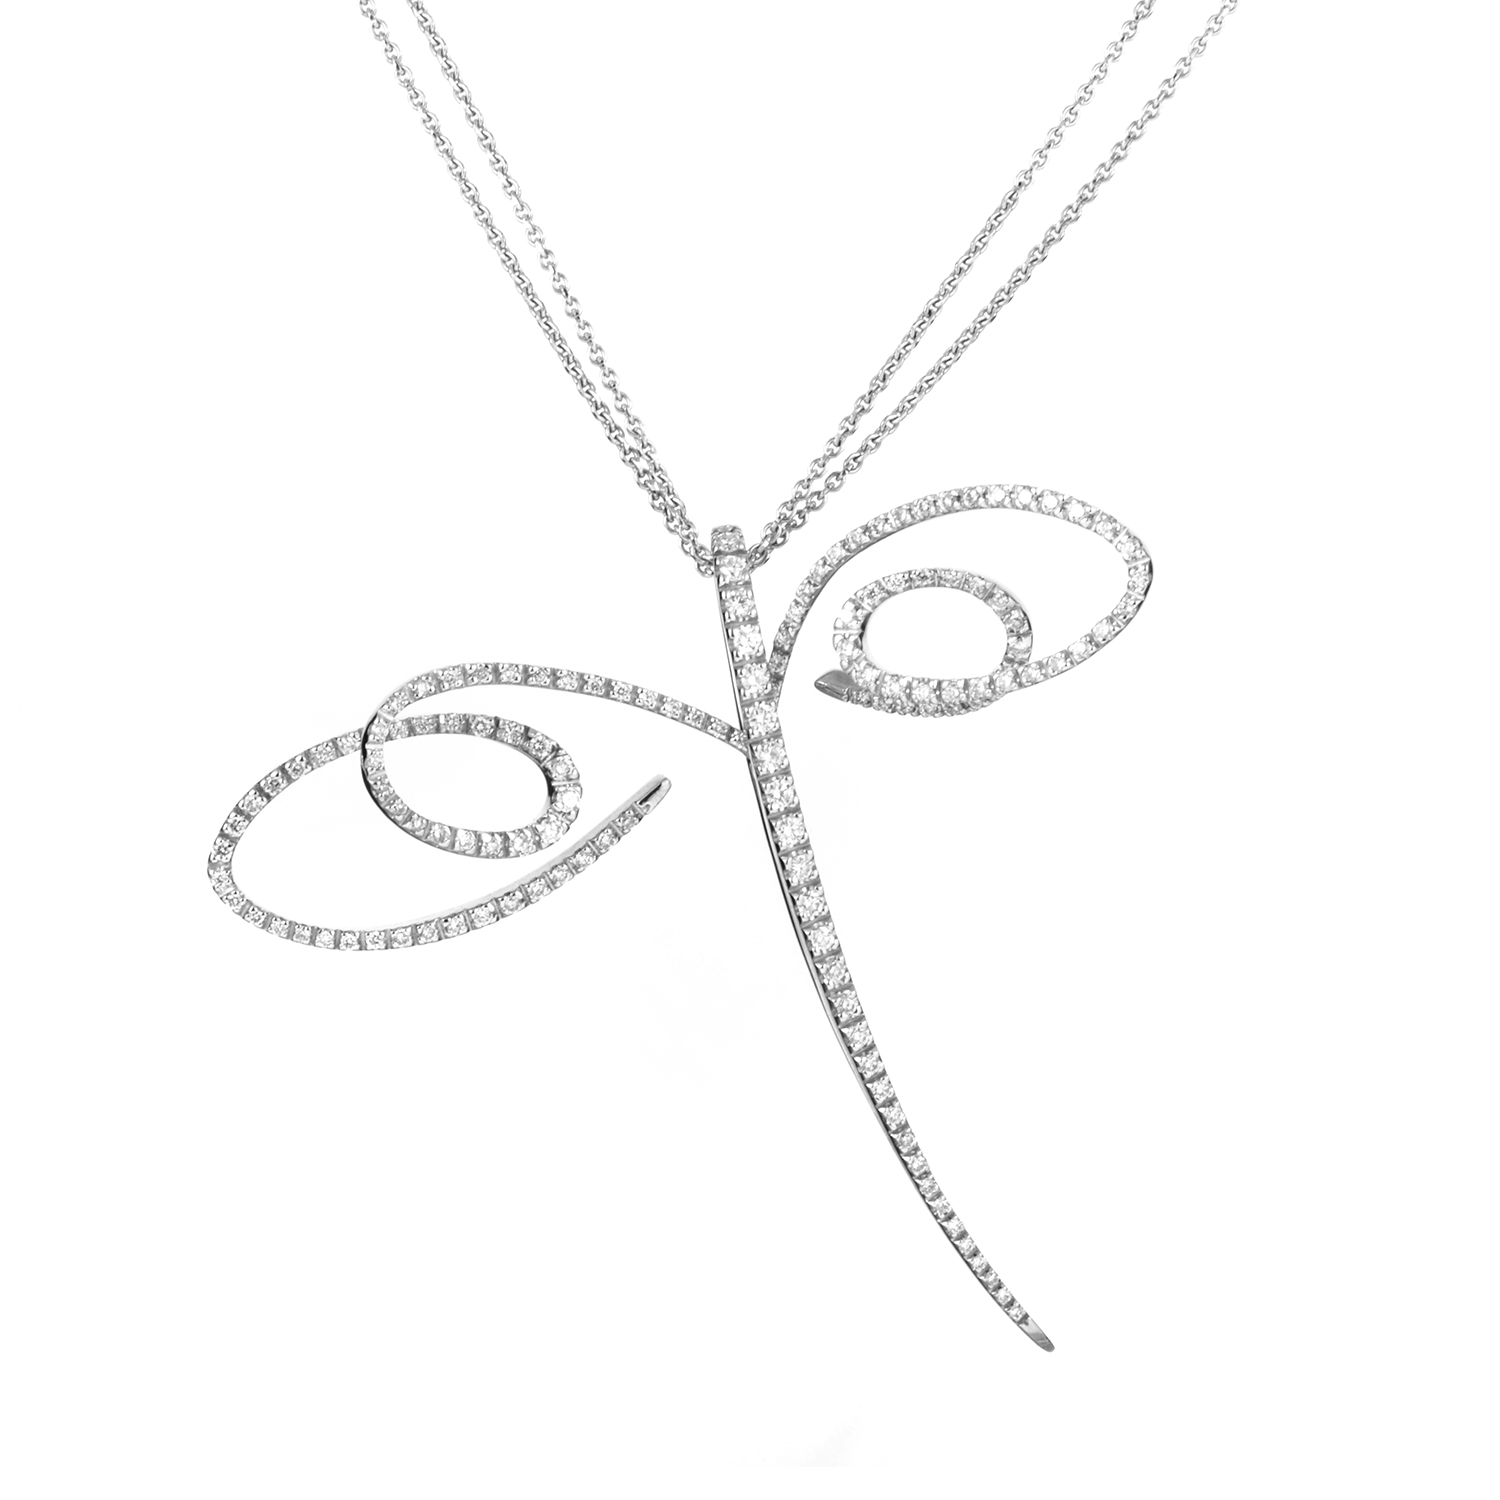 Women's 18K White Gold Diamond Dragonfly Pendant Necklace 0729-169-0